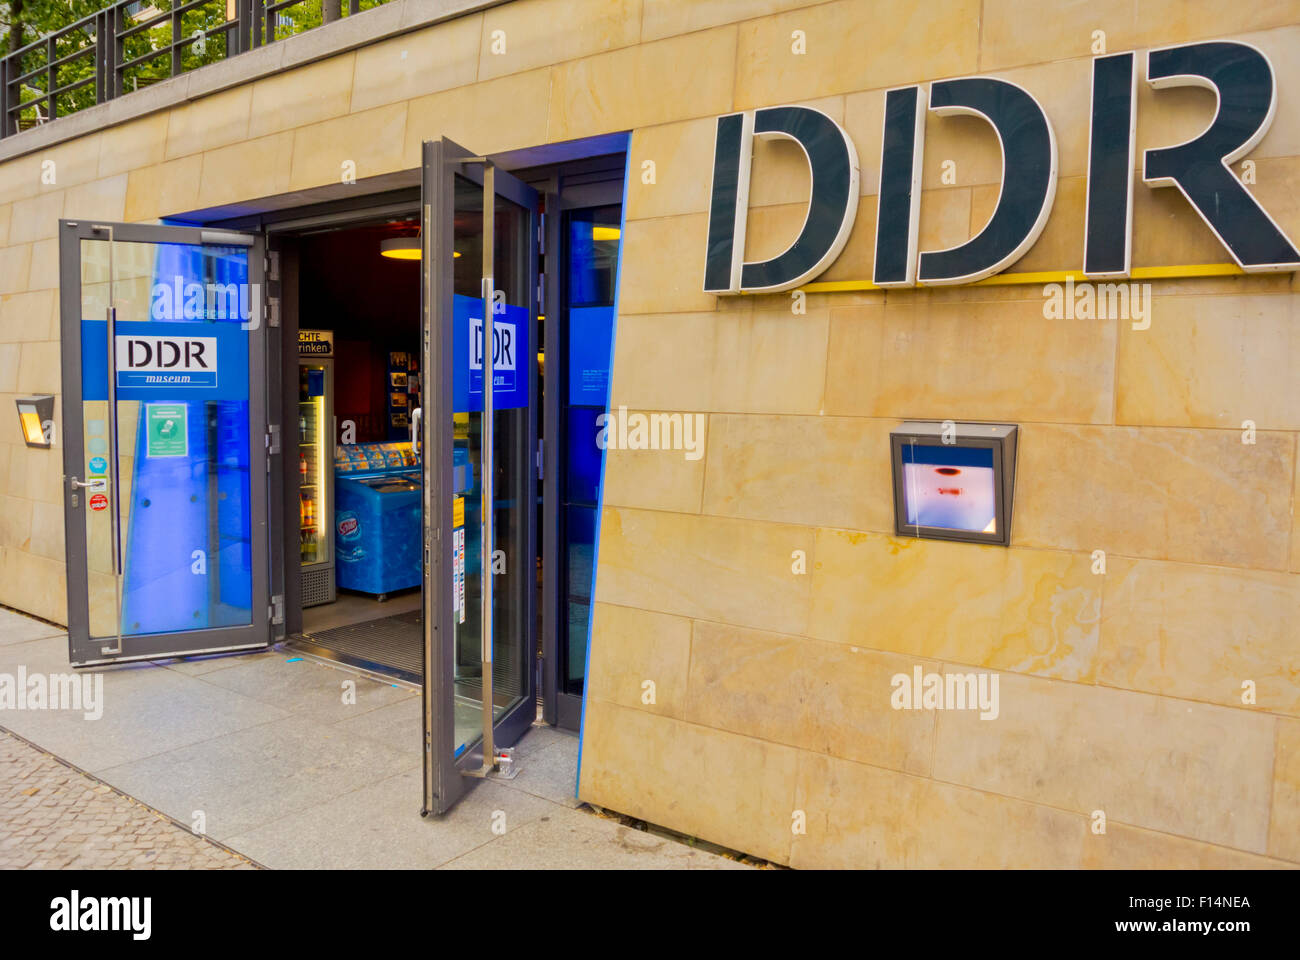 DDR museum, museum of East Germany, Mitte, Berlin, Germany - Stock Image